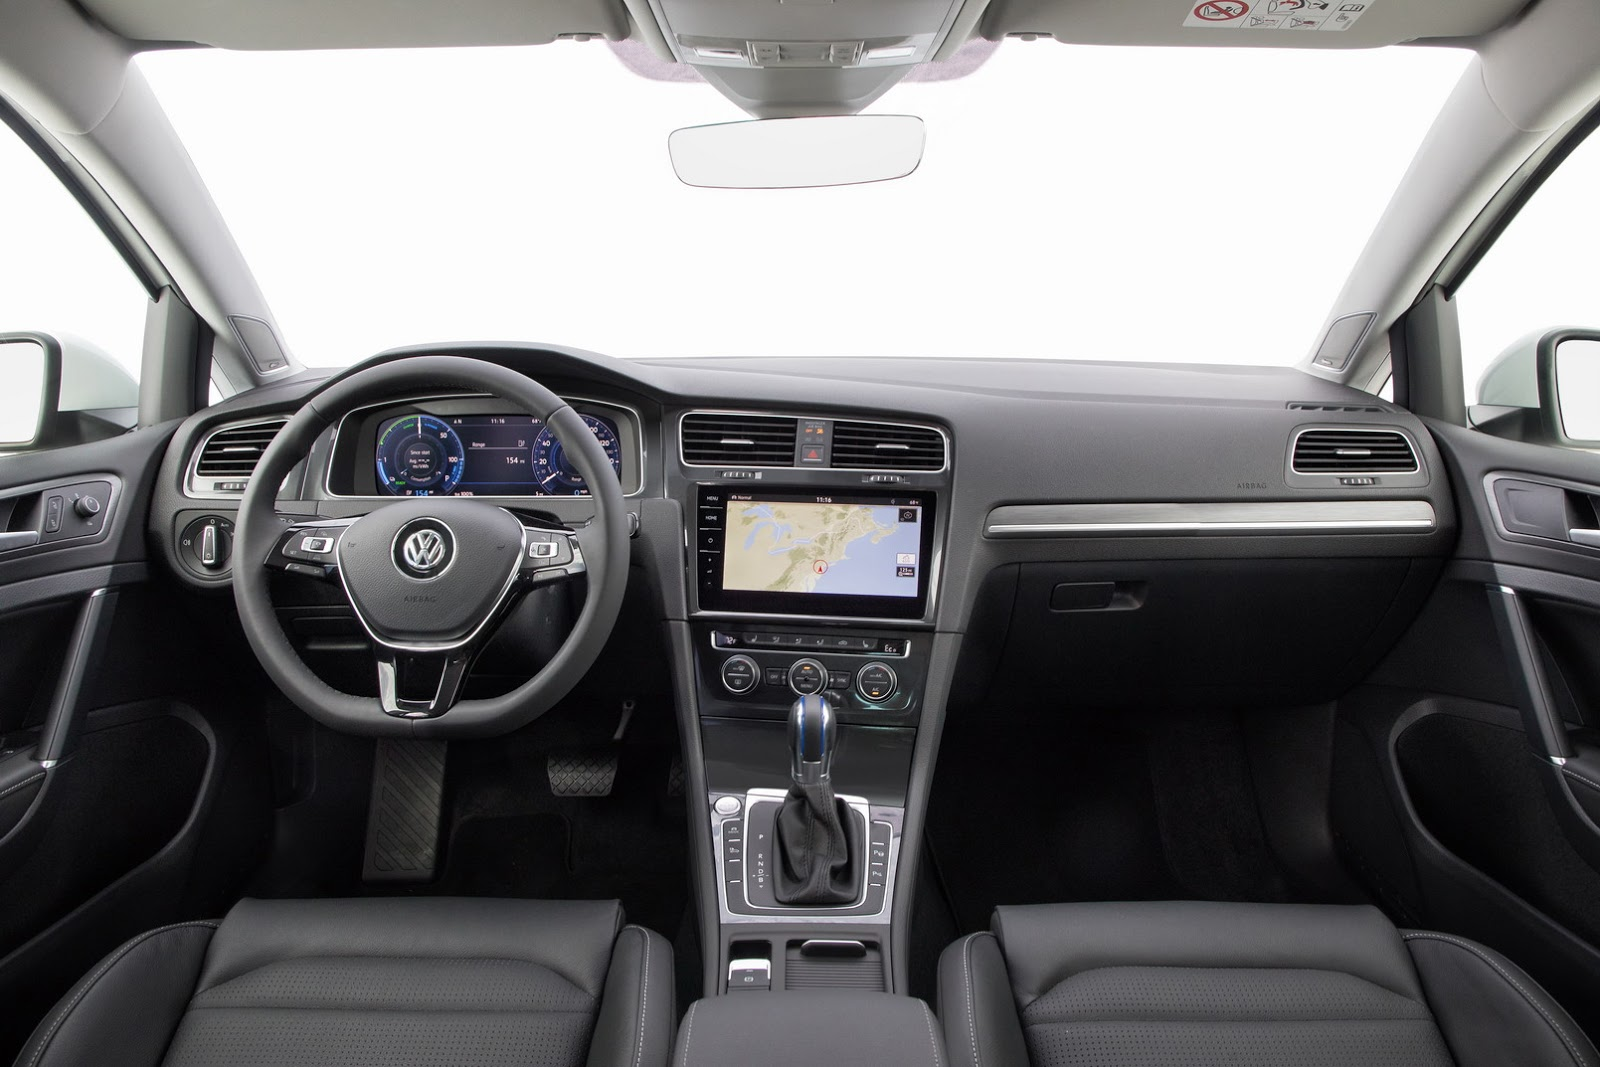 Auto cockpit vw  Updated 2018 VW Golf Debuts With LED Lights, Digital Cockpit in ...